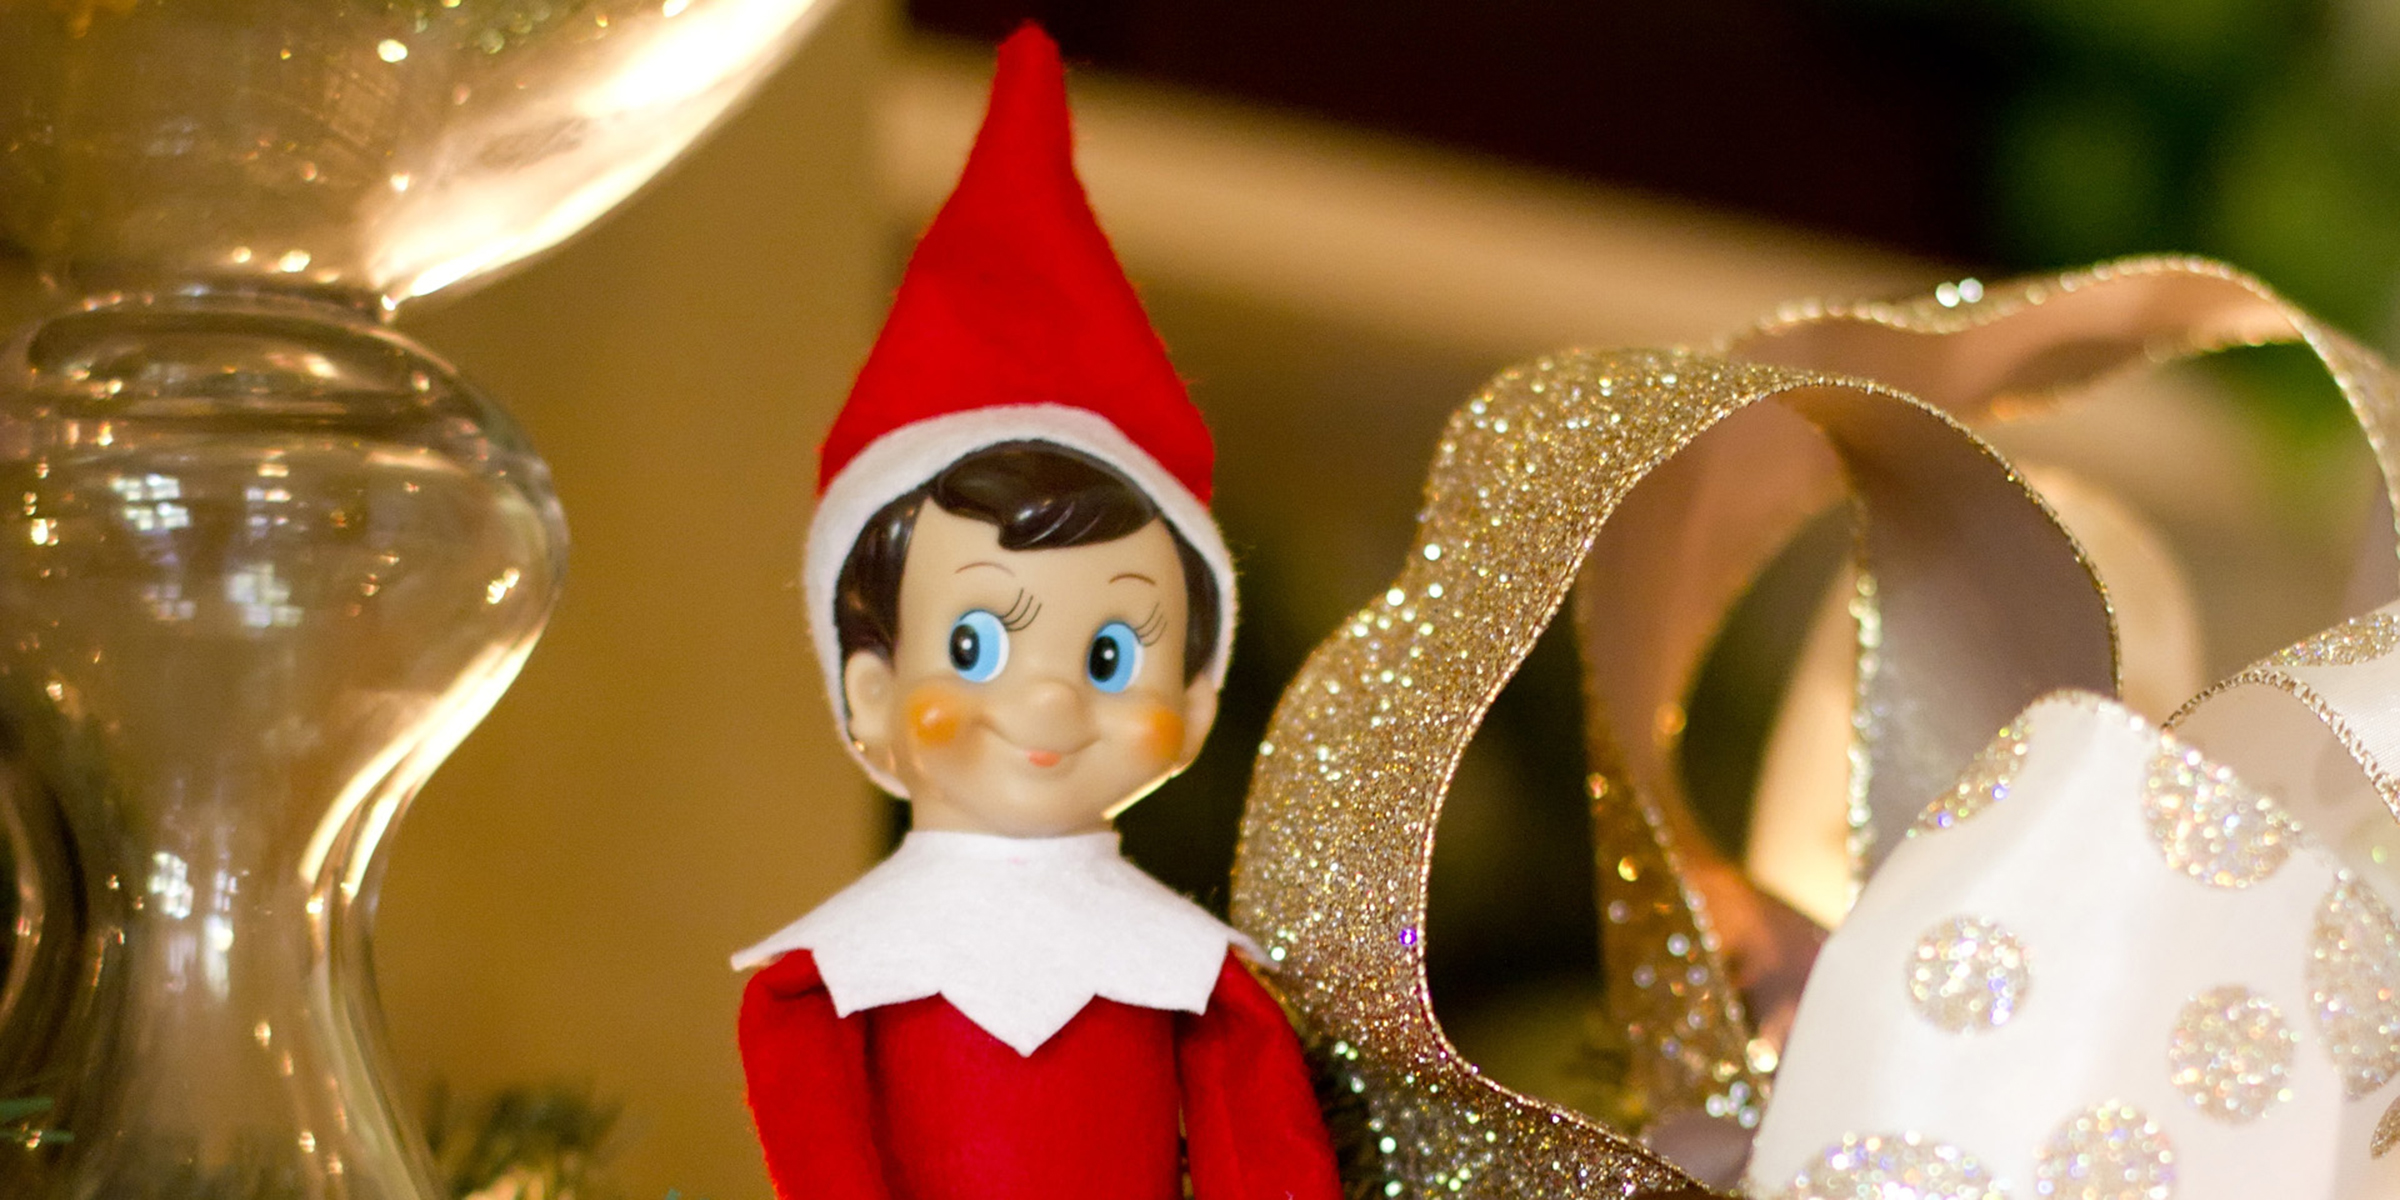 Elf On The Shelf Ideas 2020 21 Elf on the Shelf ideas for 2018 that will make you laugh